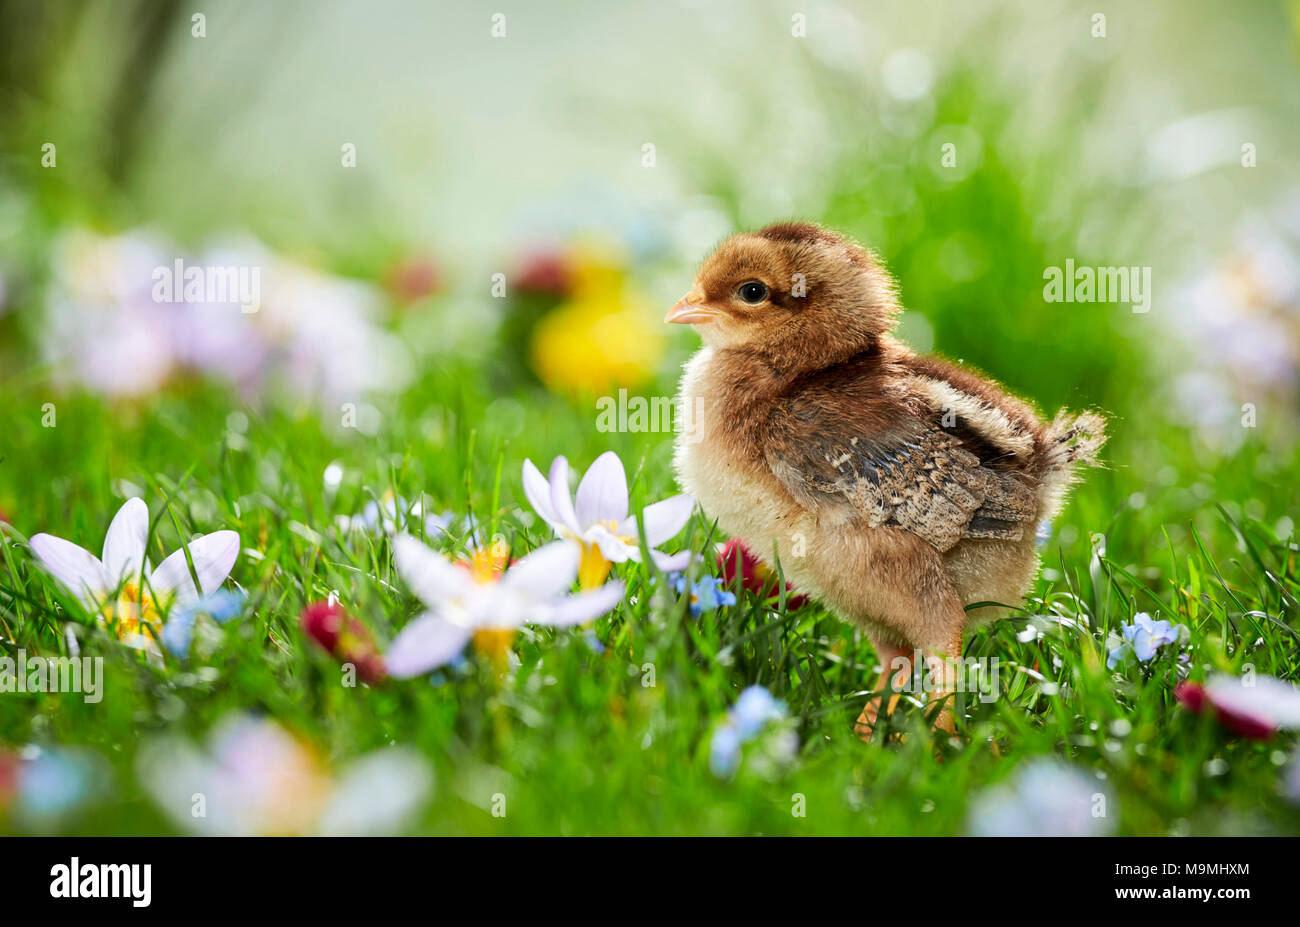 Welsummer Chicken. Chicken in flowering meadow in spring. Germany - Stock Image